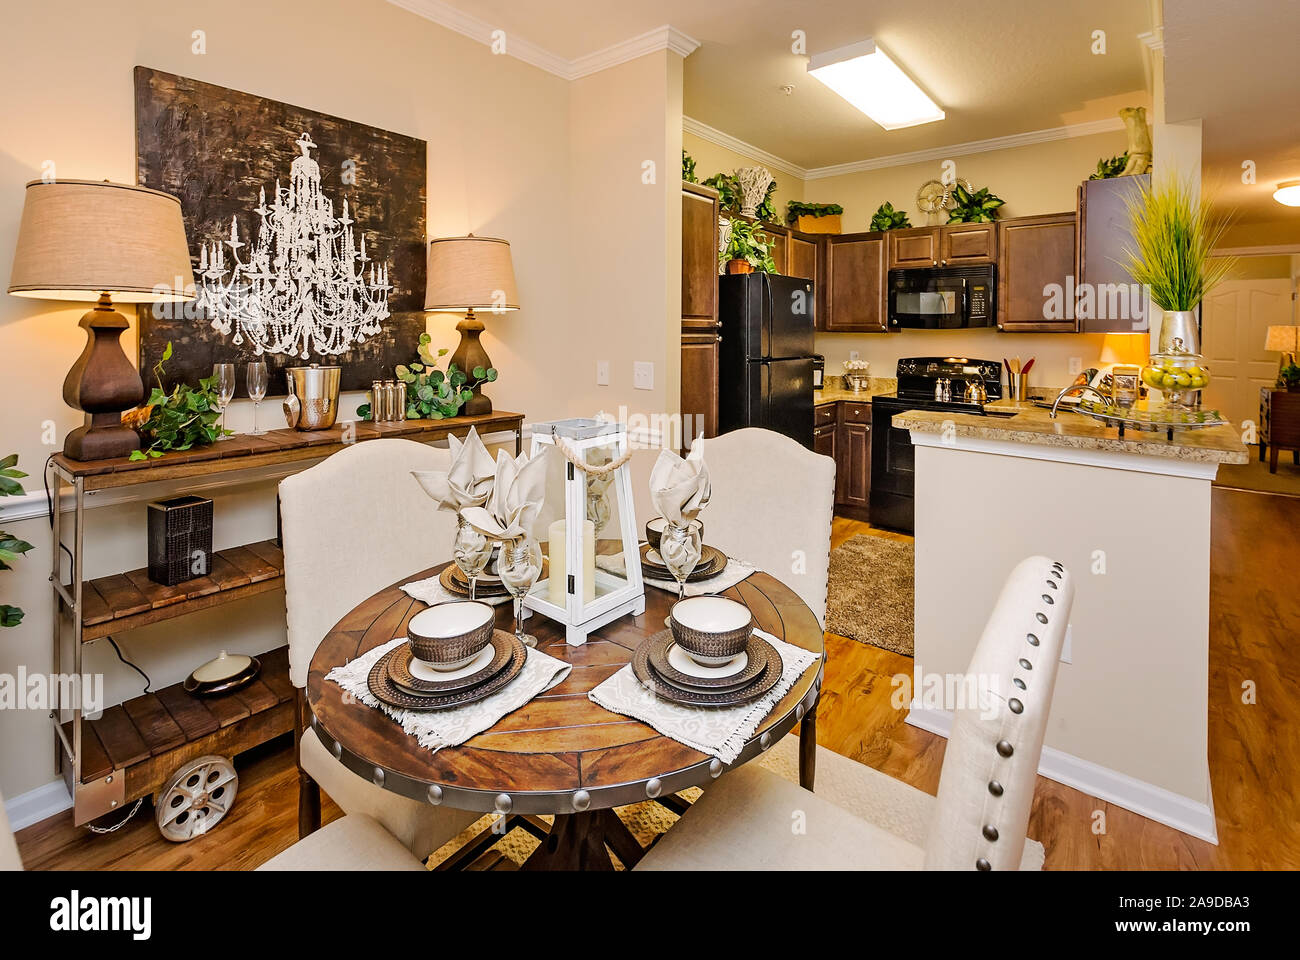 An Open Floor Plan Offers A View From The Dining Room To The Kitchen At Cypress Cove Apartment Homes In Mobile Alabama Stock Photo Alamy